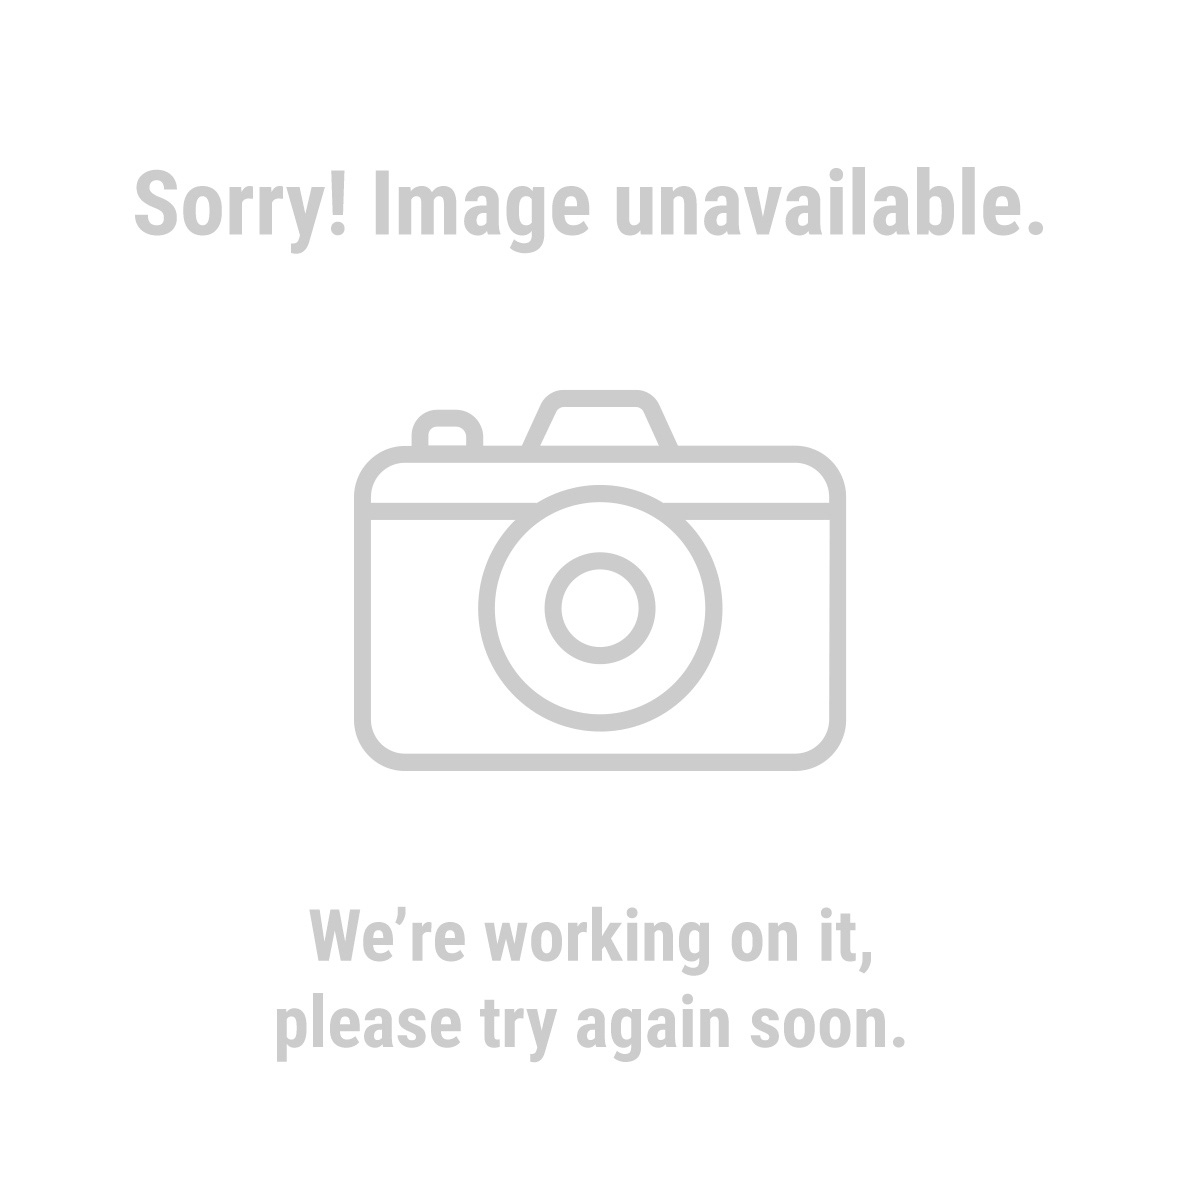 Central-Machinery 62520 8 in. 5 Speed Bench Drill Press